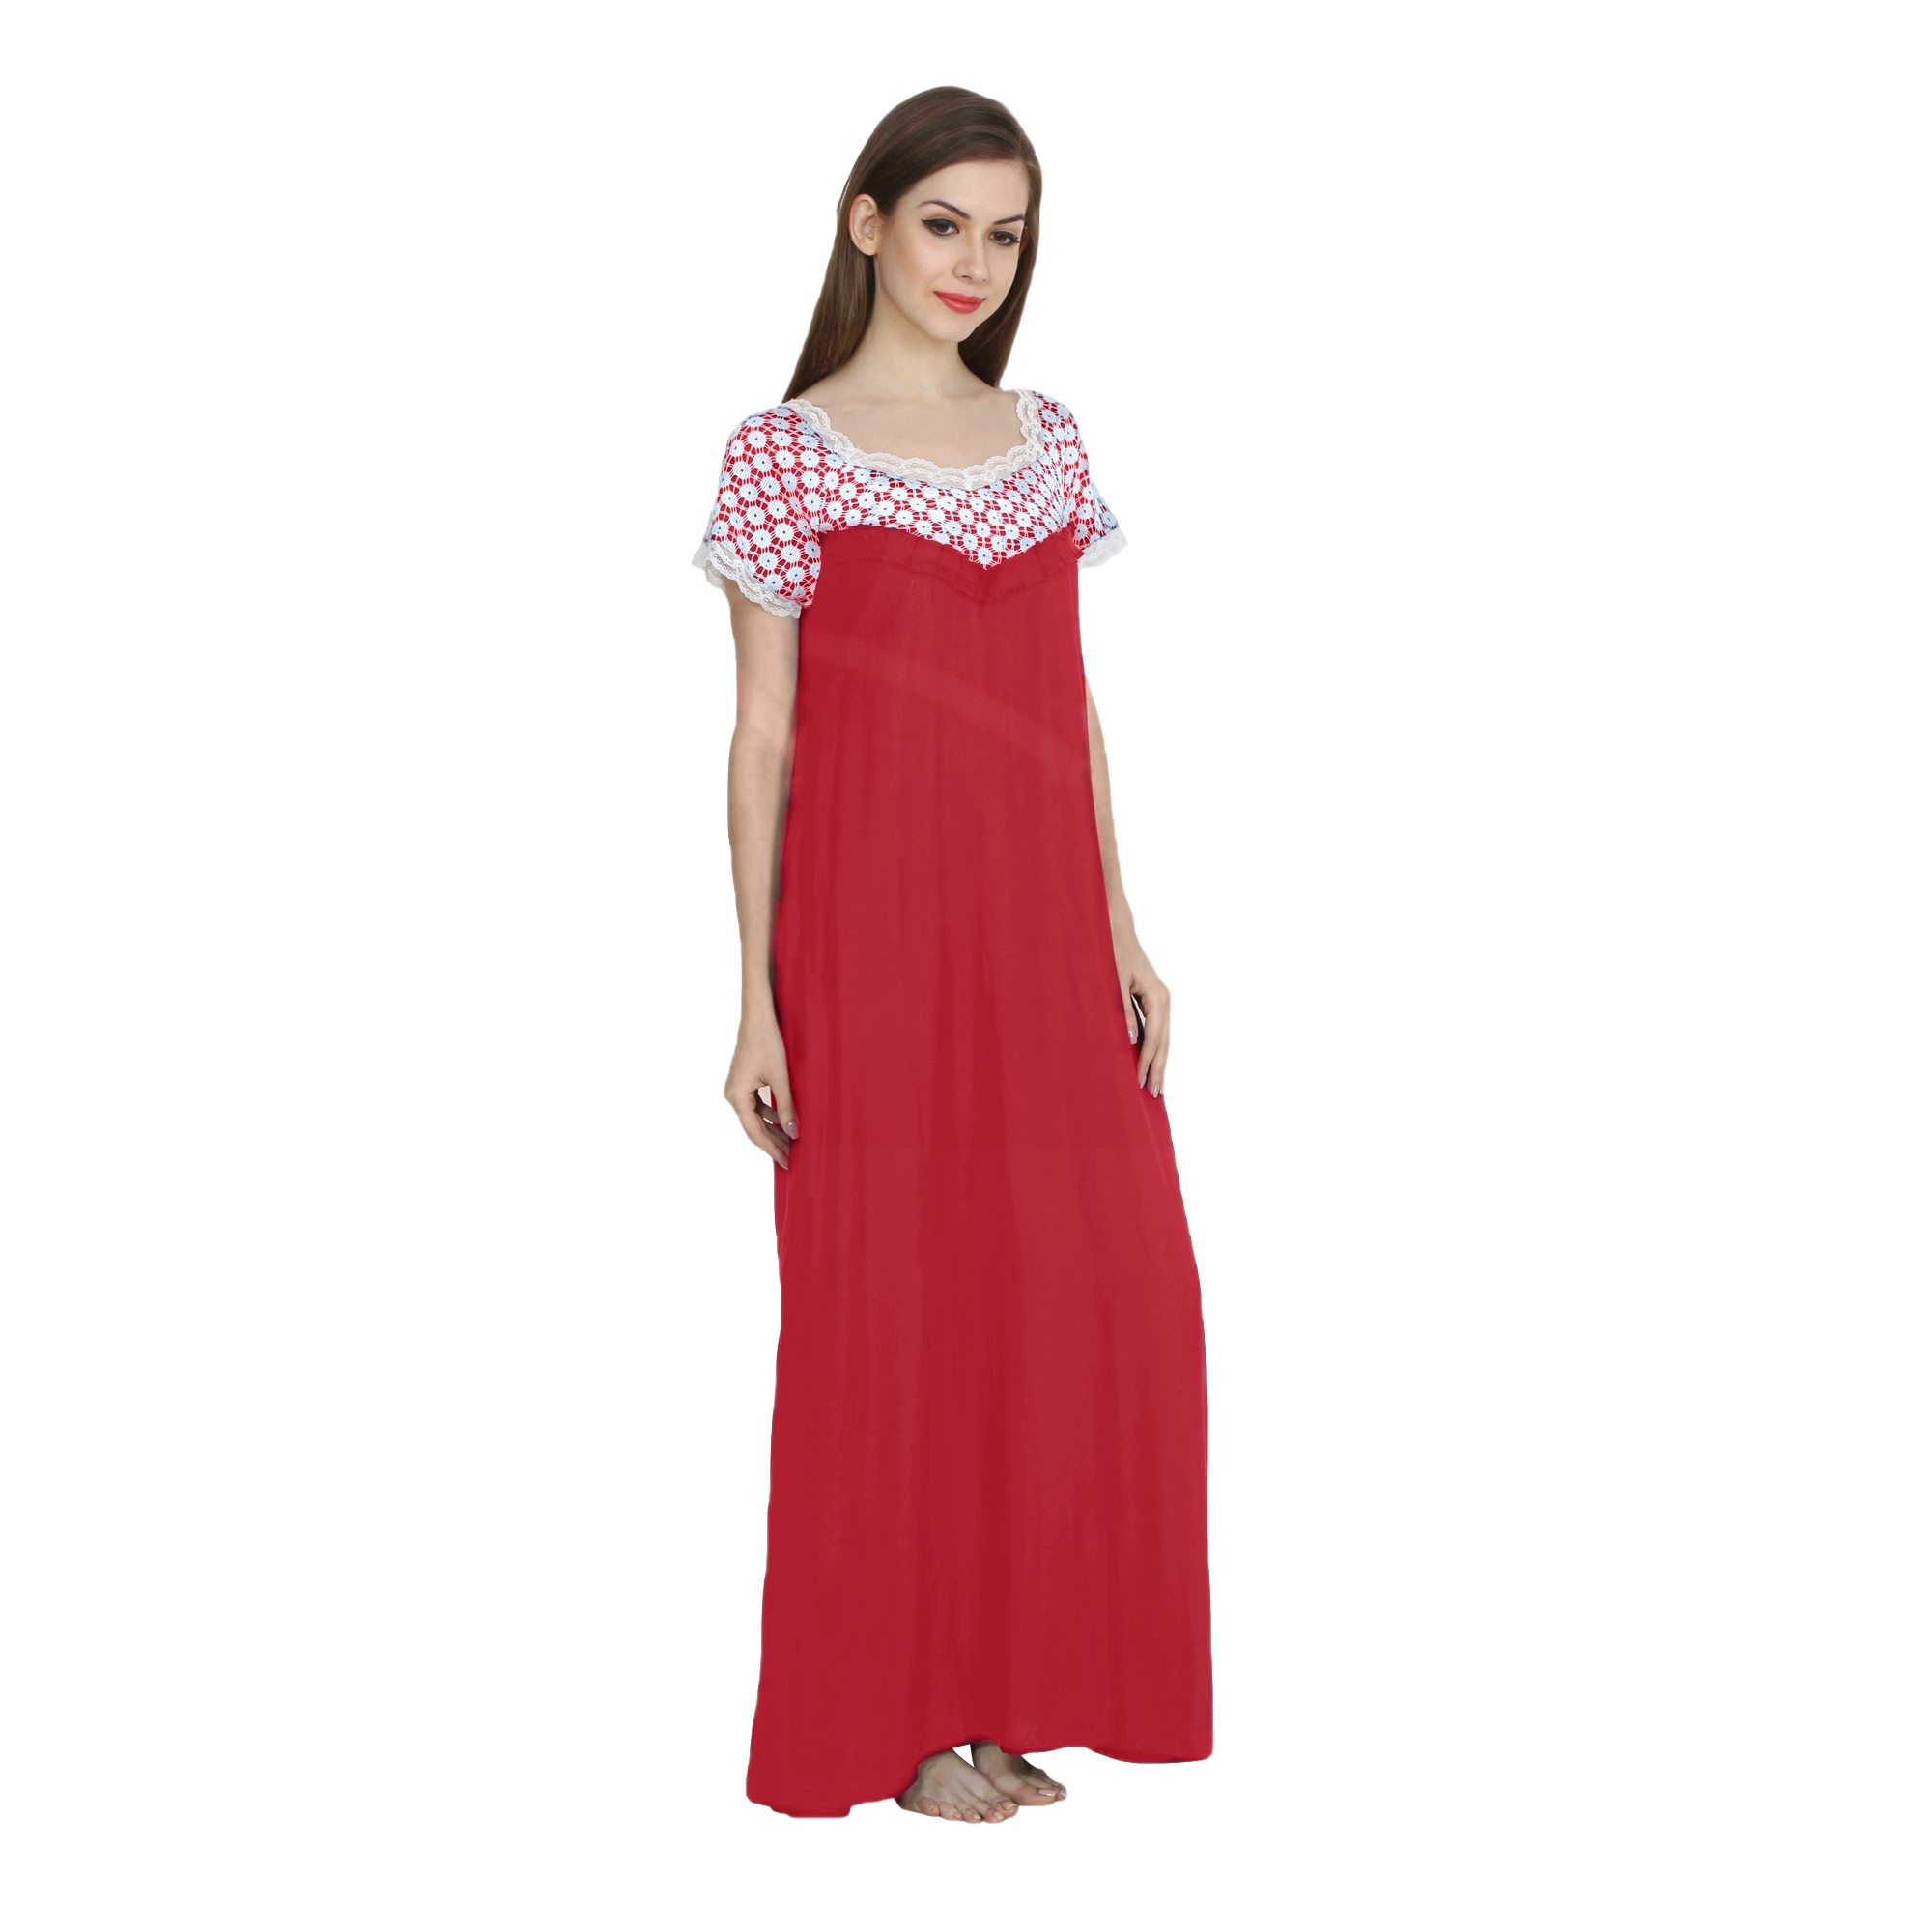 Embellished Bodice Maxi Night-Gown Nighty in Vinyl Hot Pink